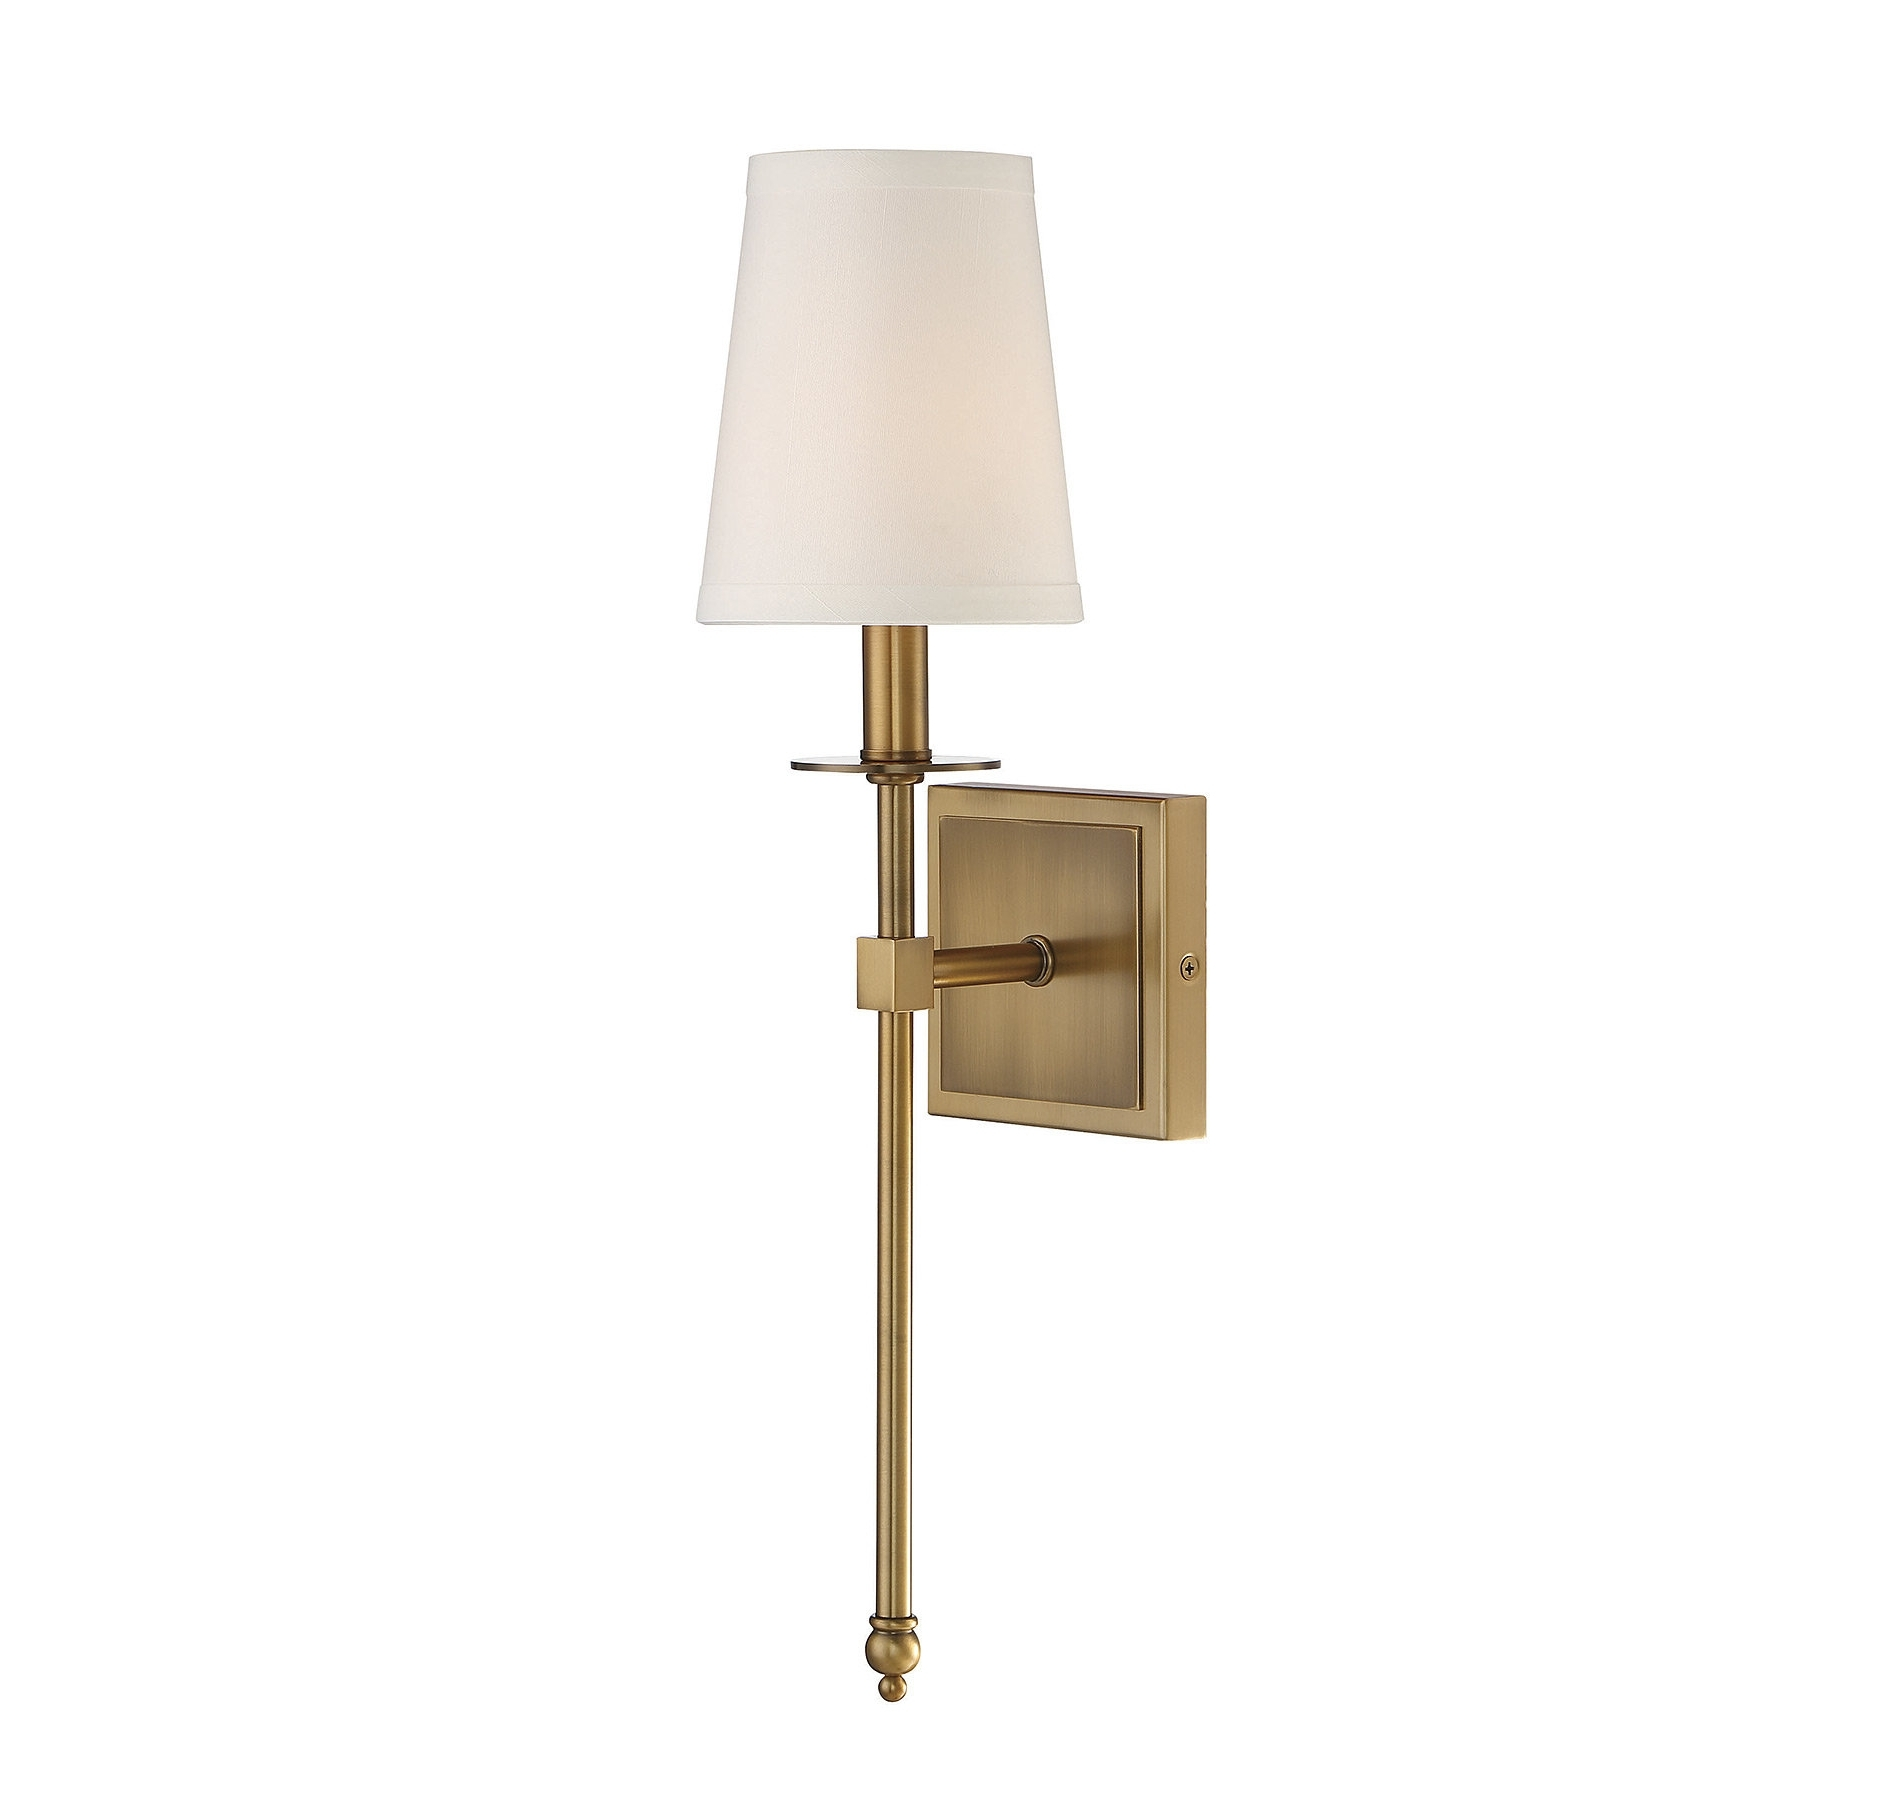 Preferred Mid Century Modern Sconces You'll Love (View 17 of 20)